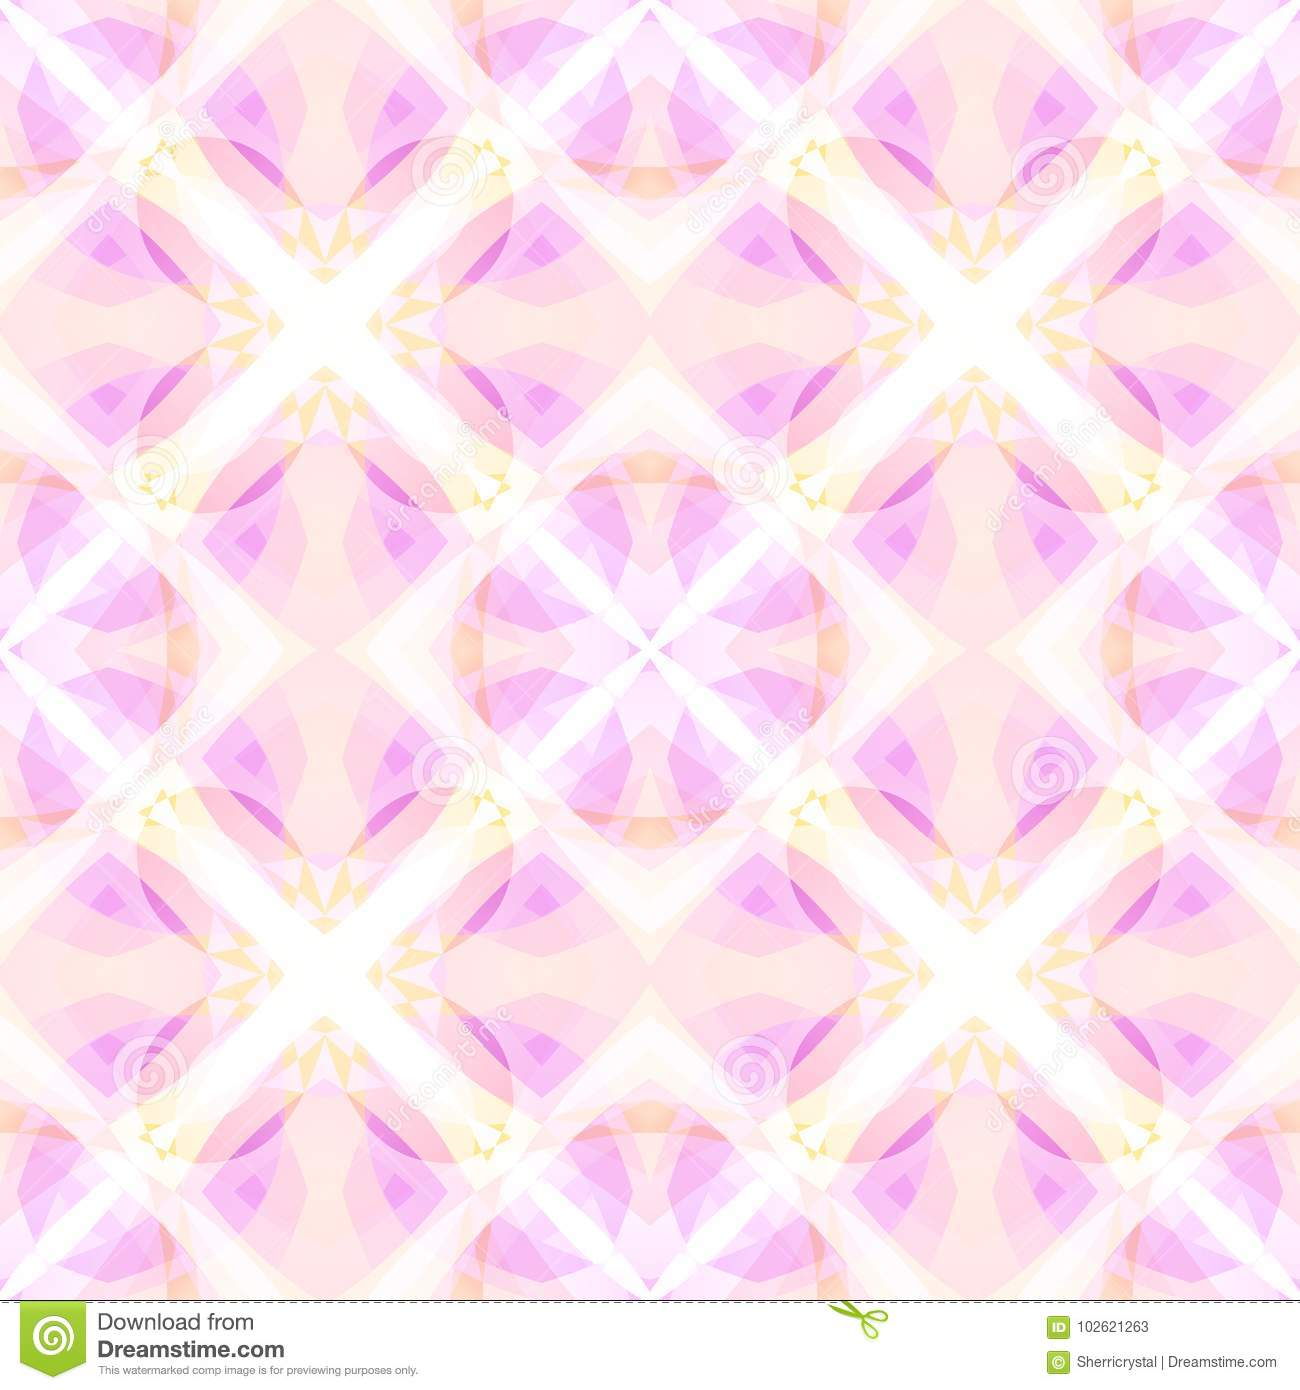 Light Pink Modern Abstract Texture Detailed Background Illustration